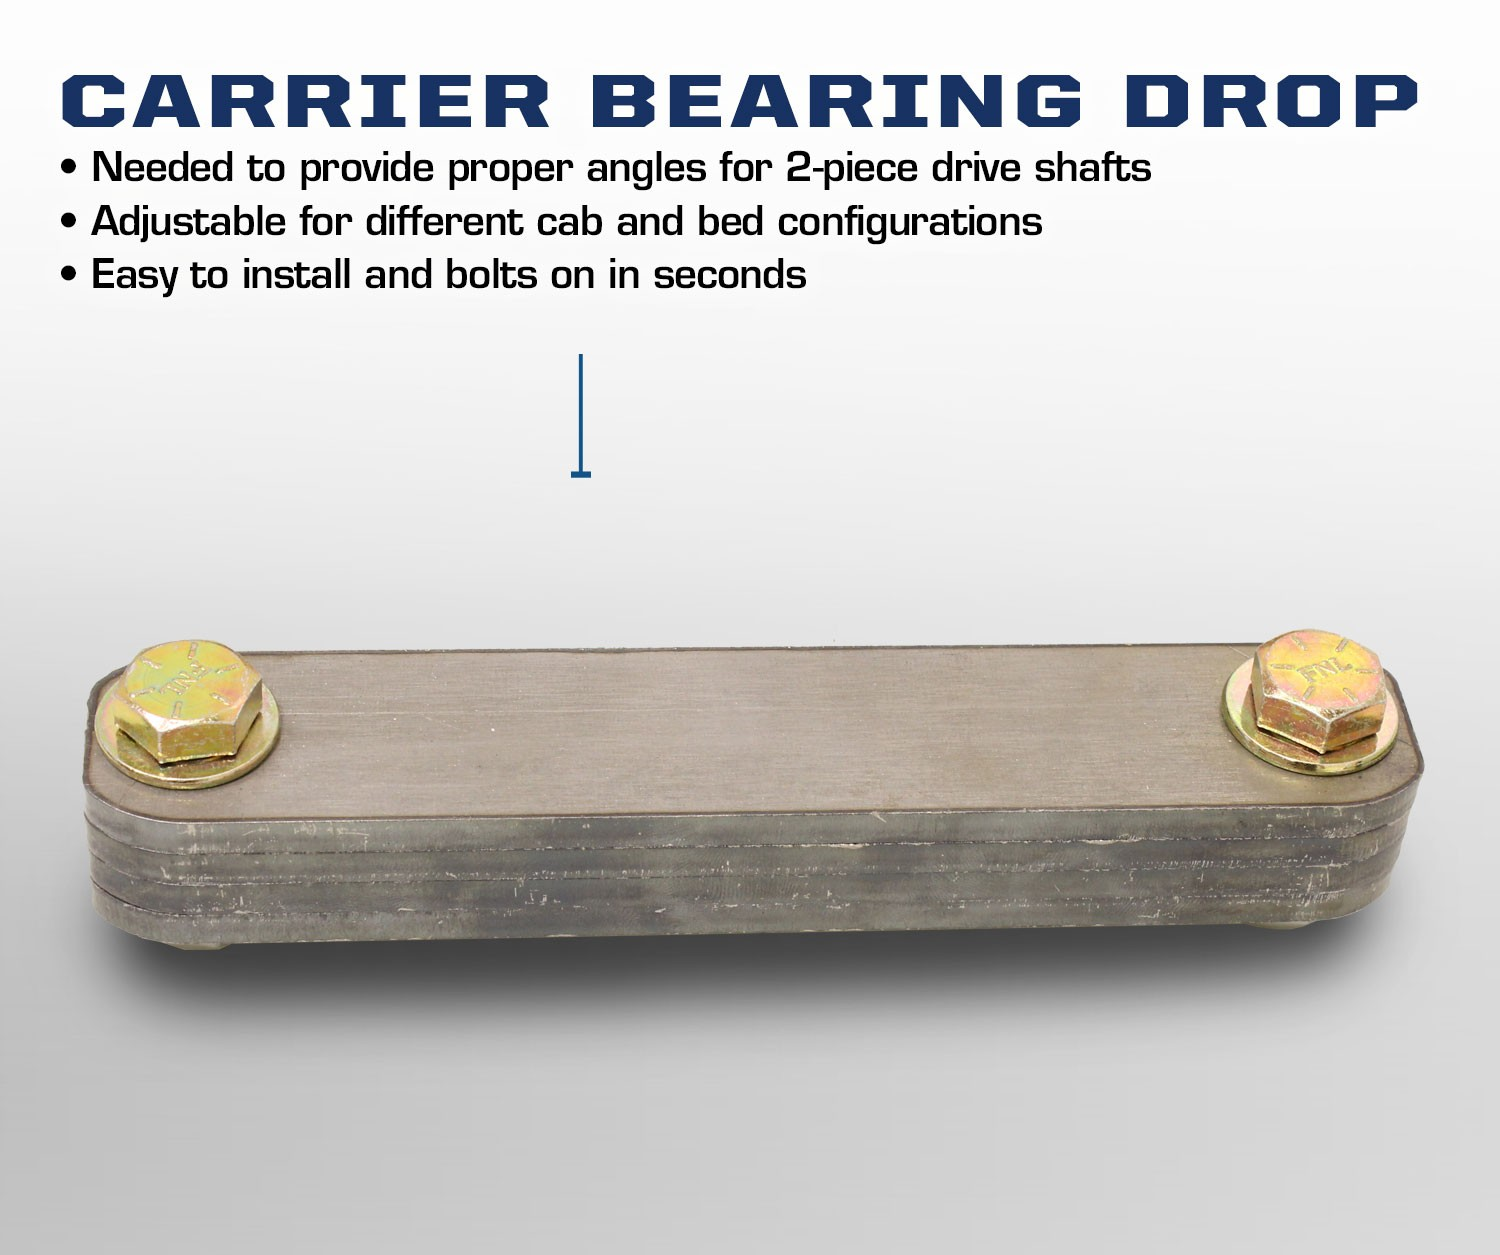 Carli Suspension Ford Carrier Bearing Drop - CS-CARRIERDROP-F